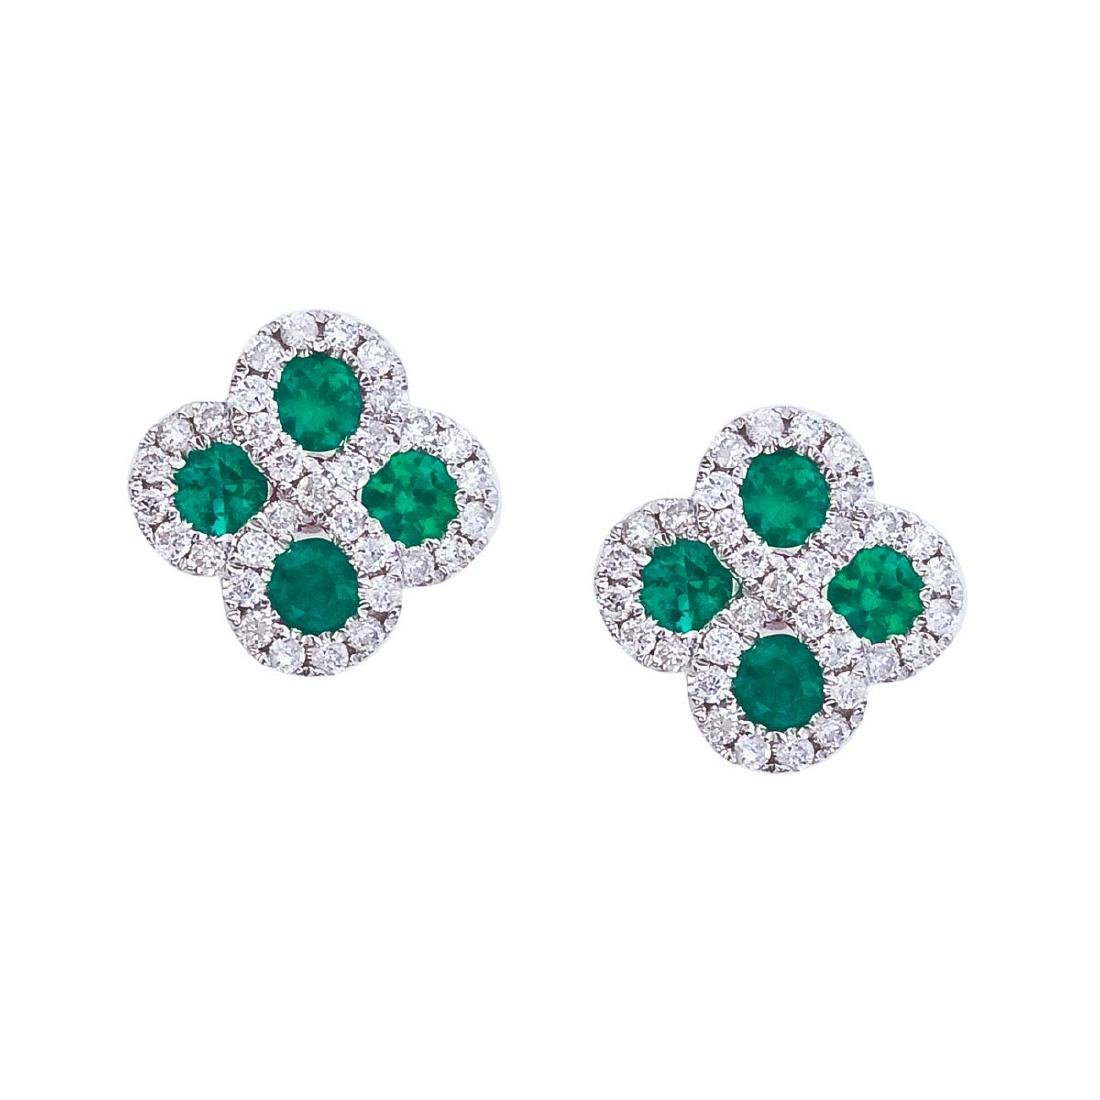 Certified 14k White Gold Emerald and .26 ct Diamond Clo